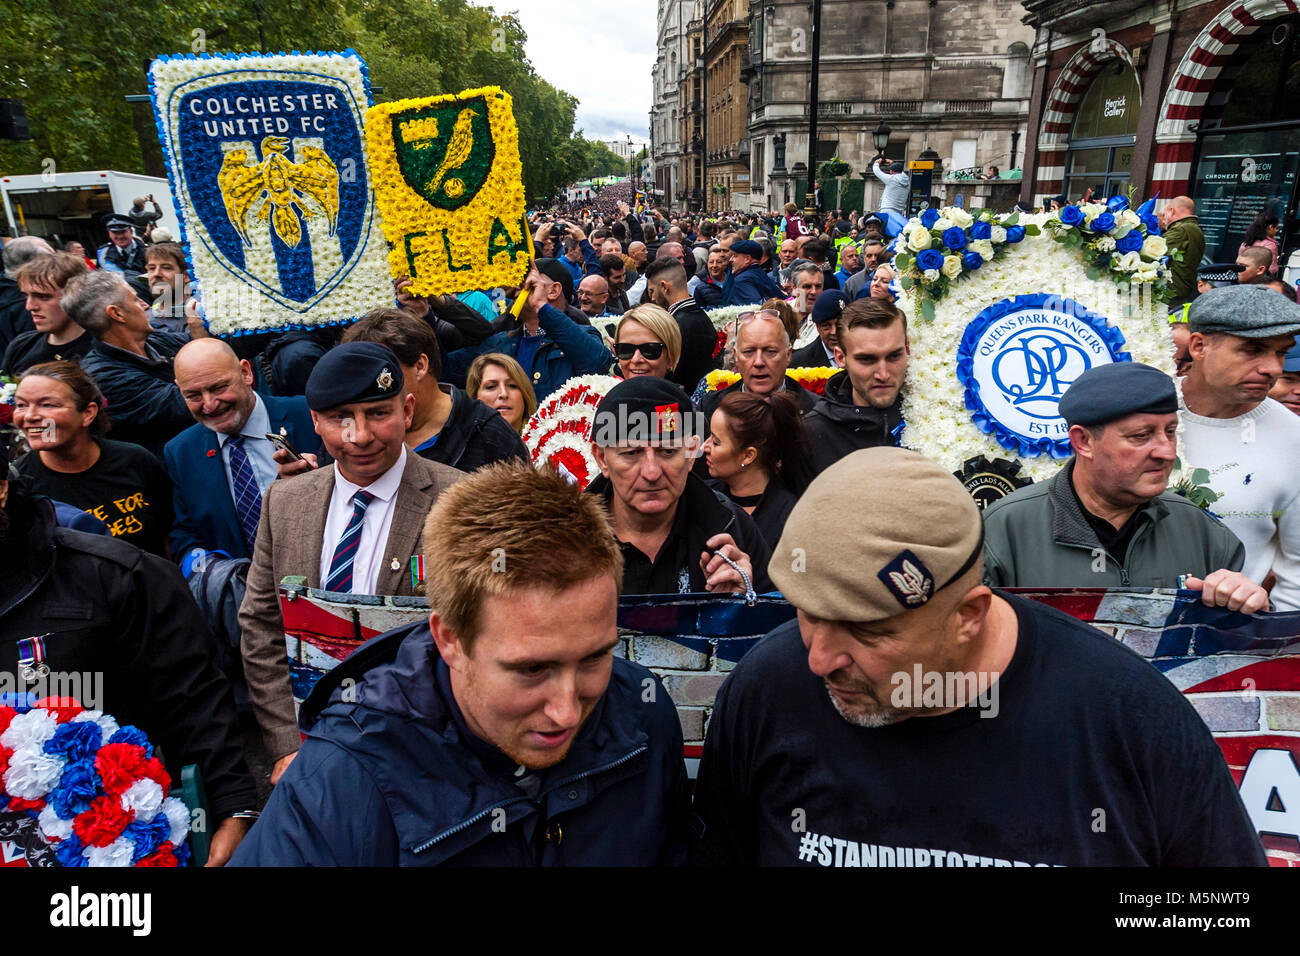 Former British soldiers join The Football Lads Alliance (FLA) march in Central London against extremism, London, - Stock Image